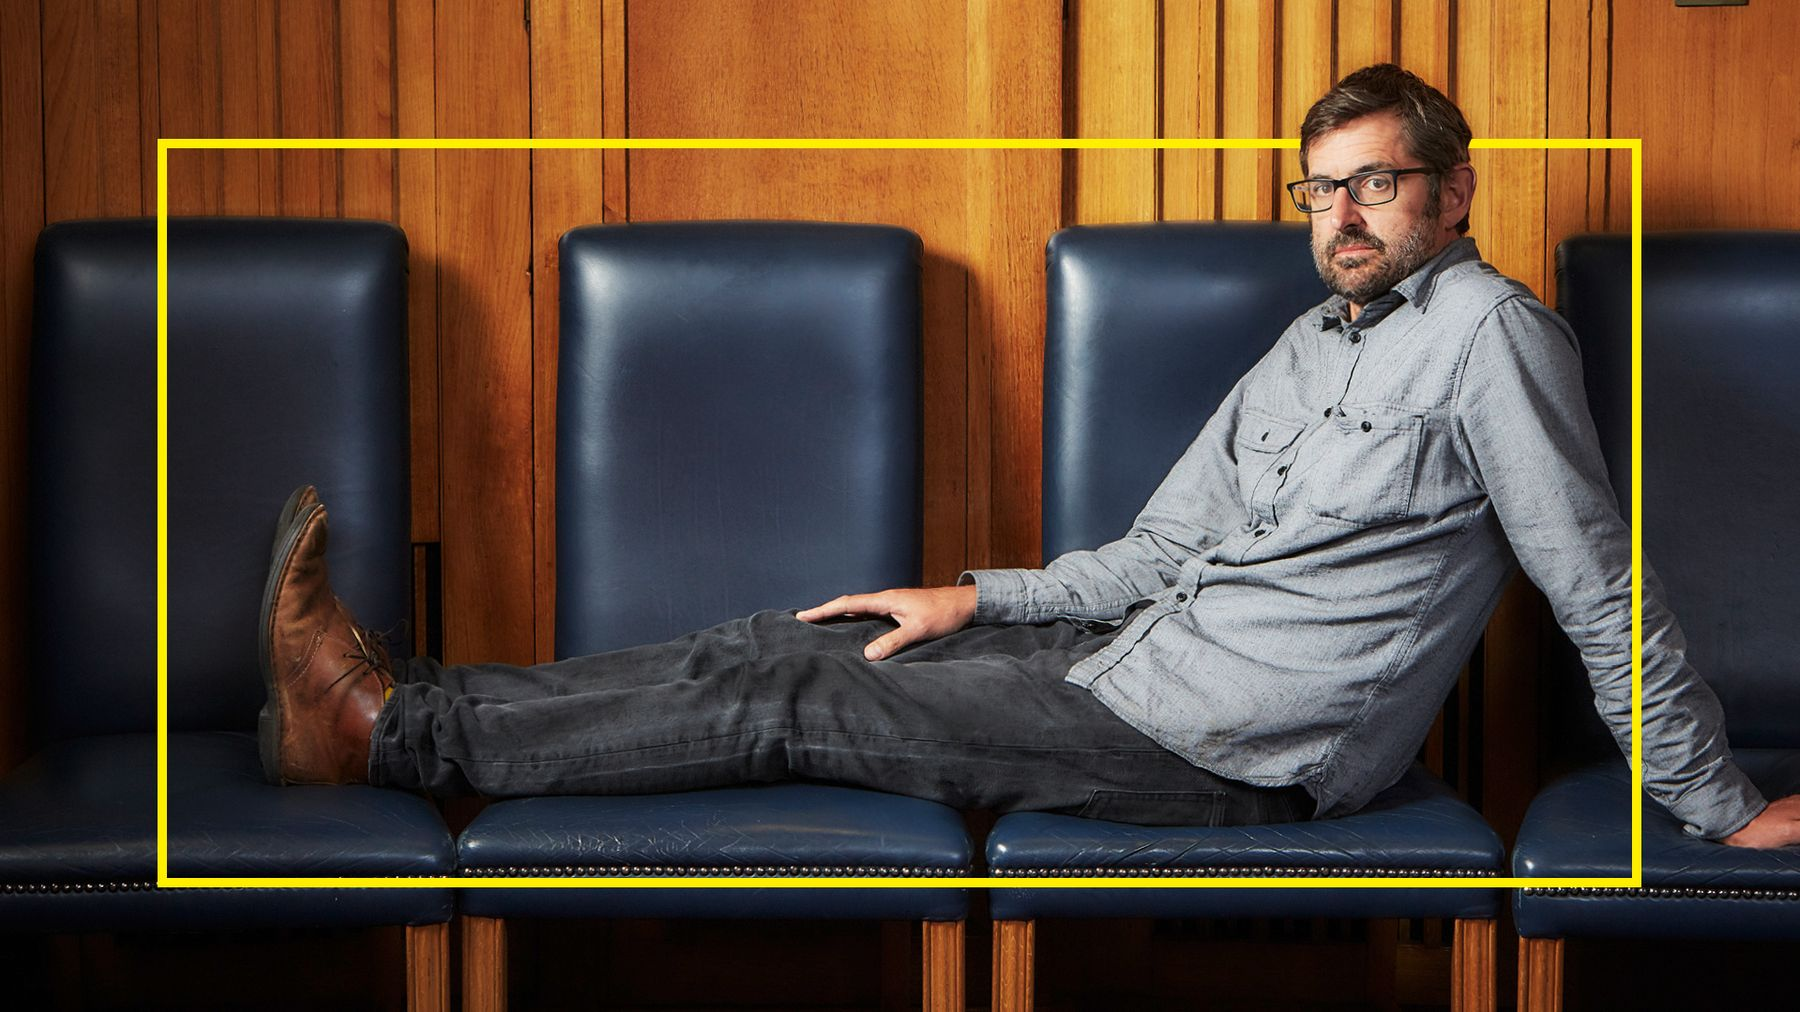 Louis Theroux: 'As Much As Having Kids Can Be Wonderful